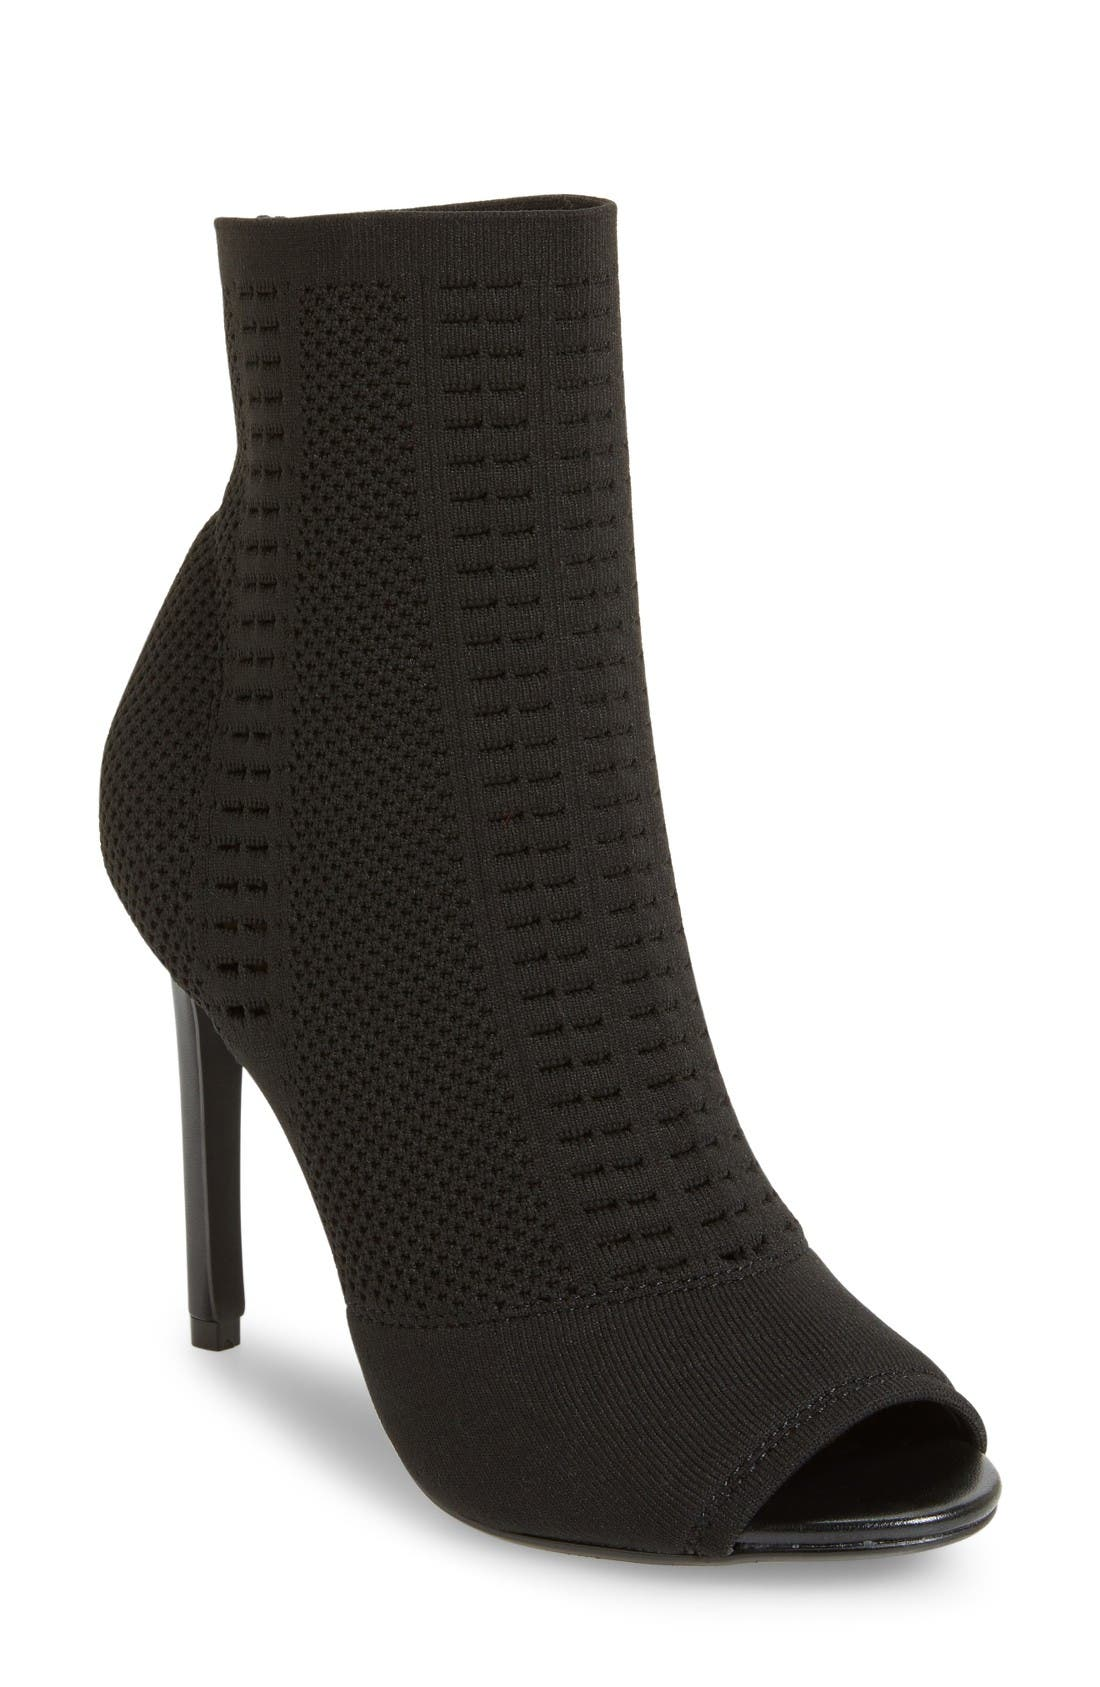 Alternate Image 1 Selected - Steve Madden Candid Knit Bootie (Women)